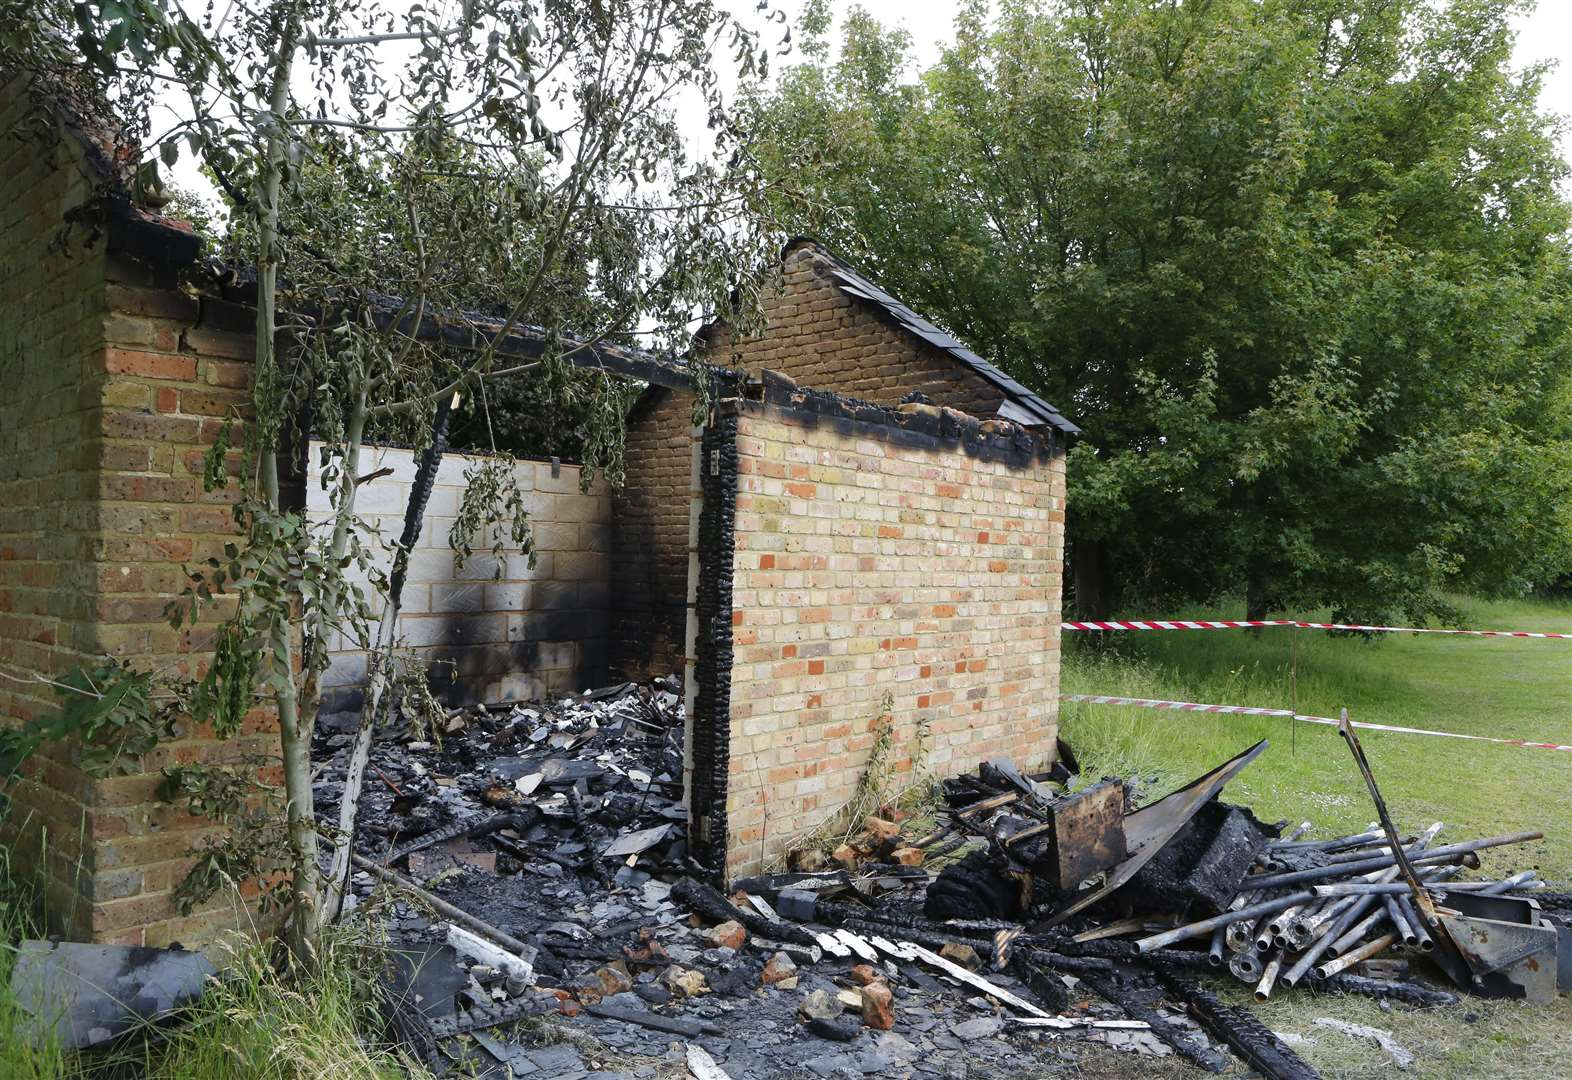 Football club loses £1,500 worth of equipment in fire